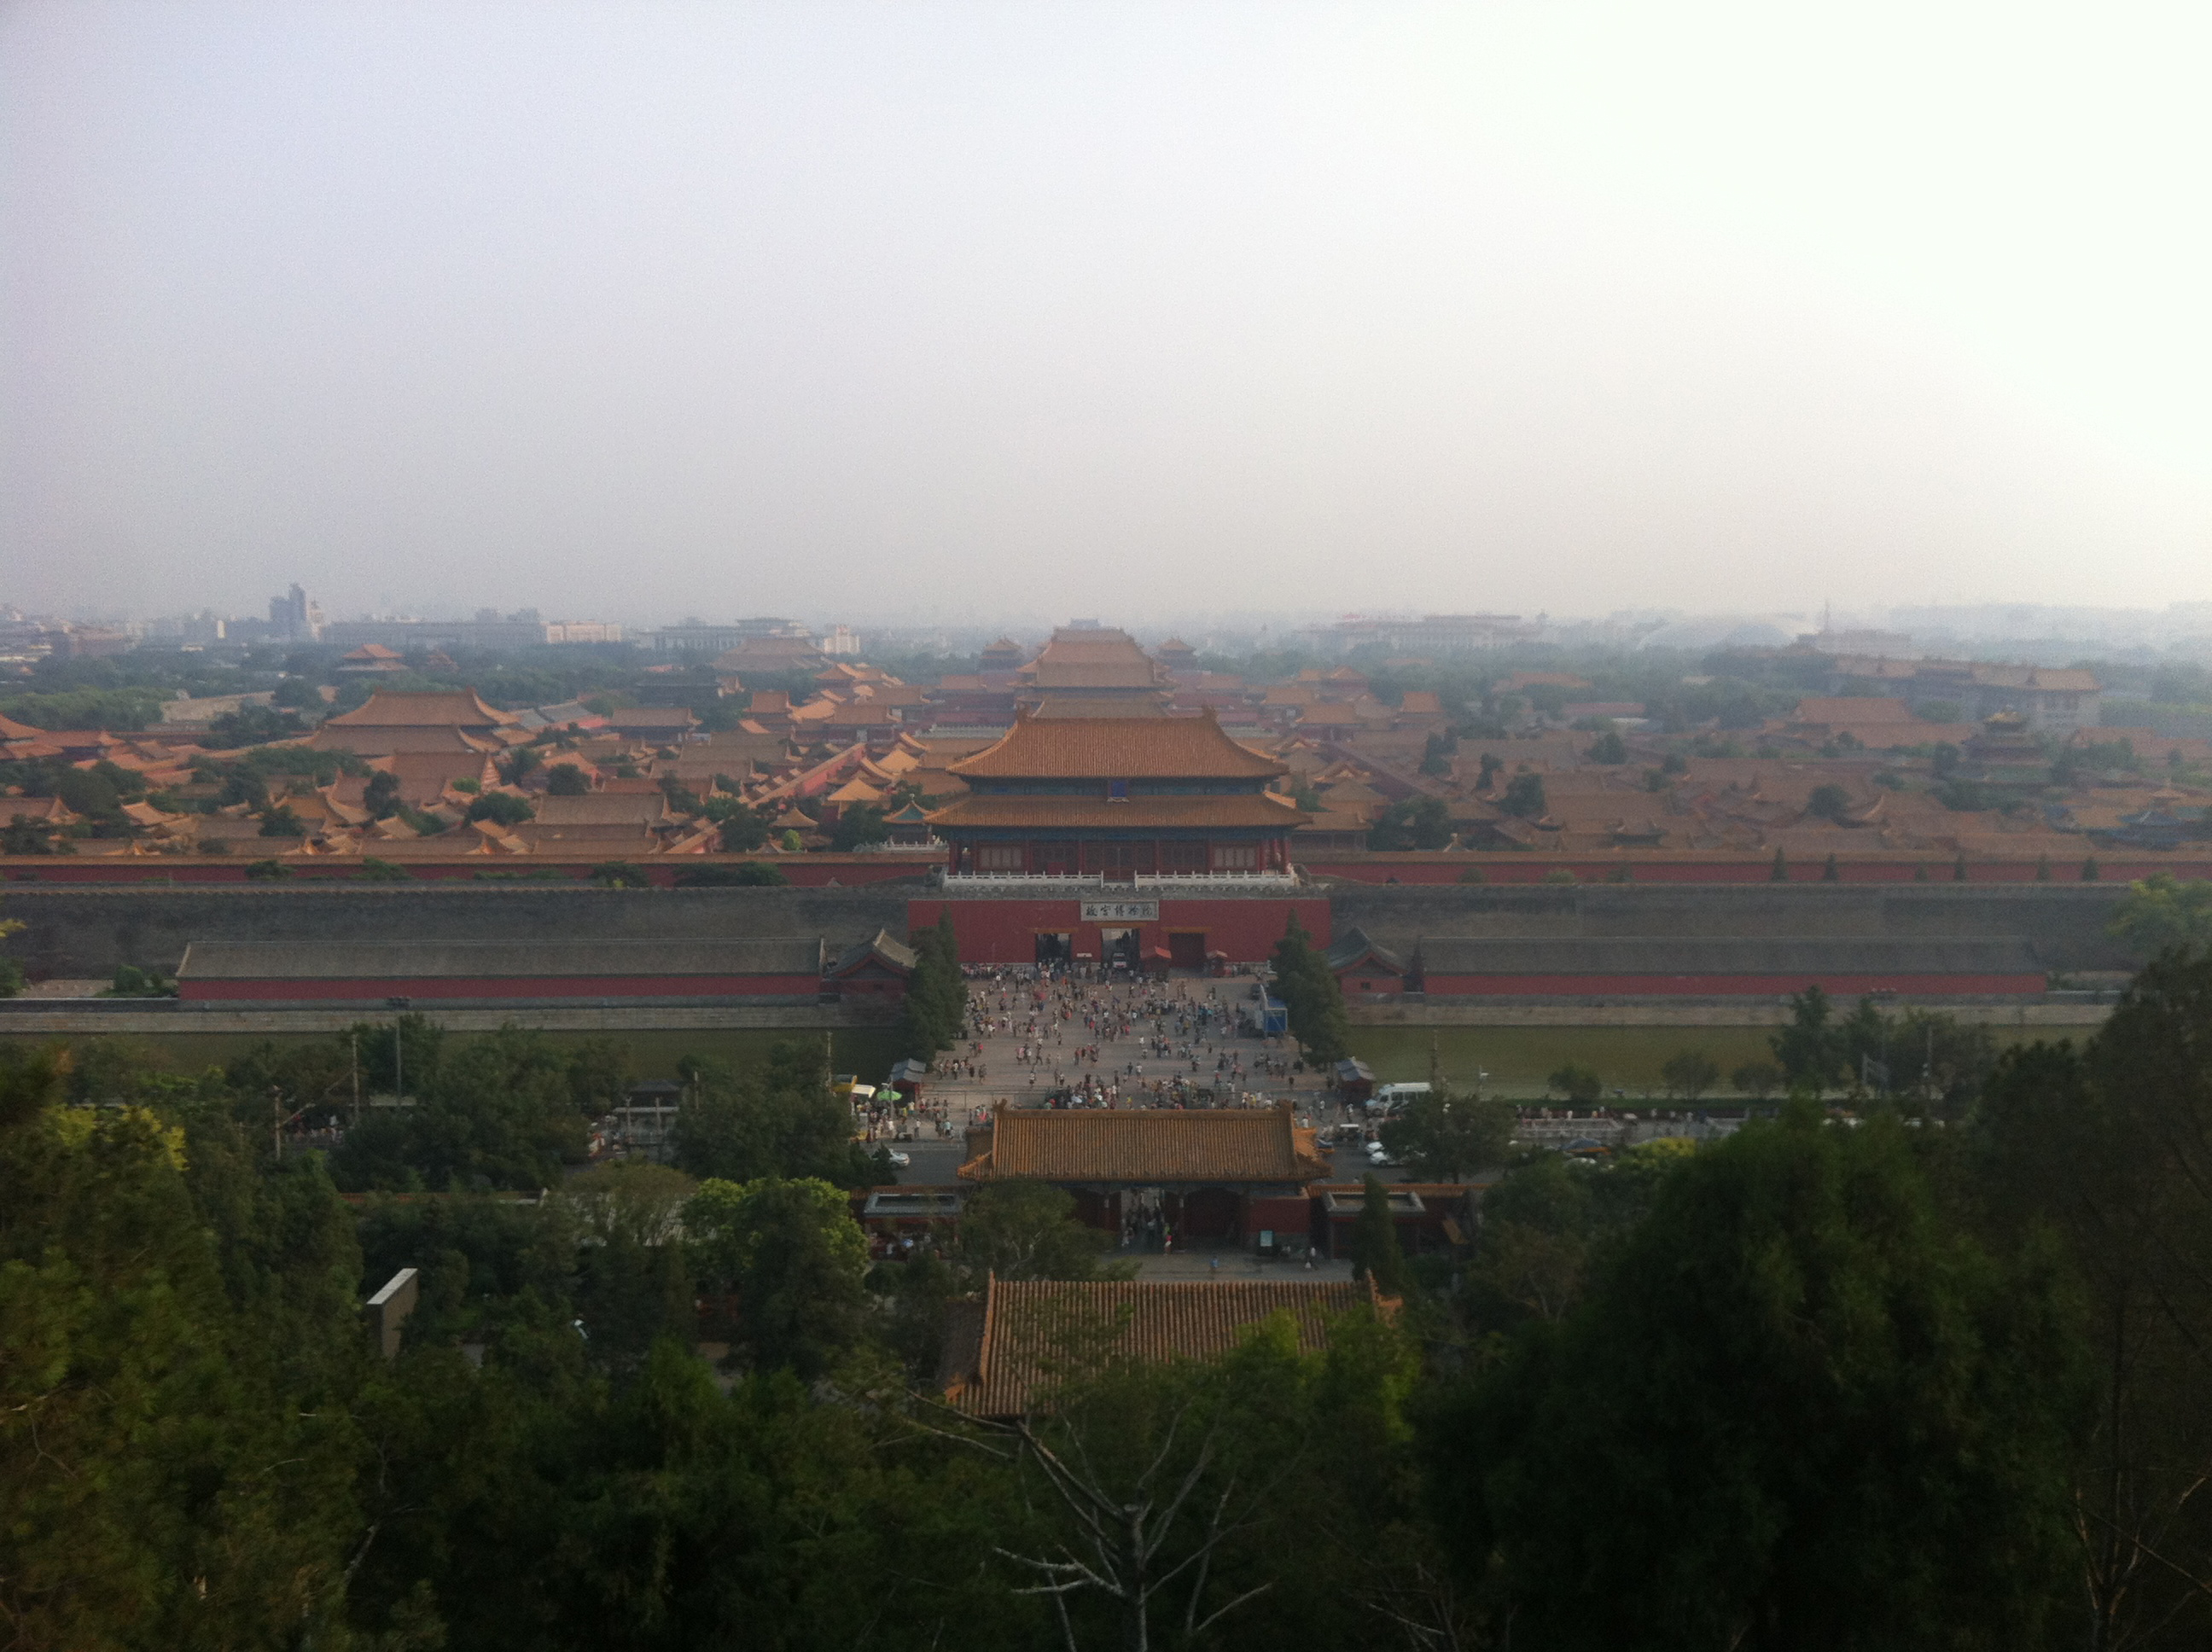 Smog over the Forbidden City | Photo by Wilson Carletti (All Rights Reserved)